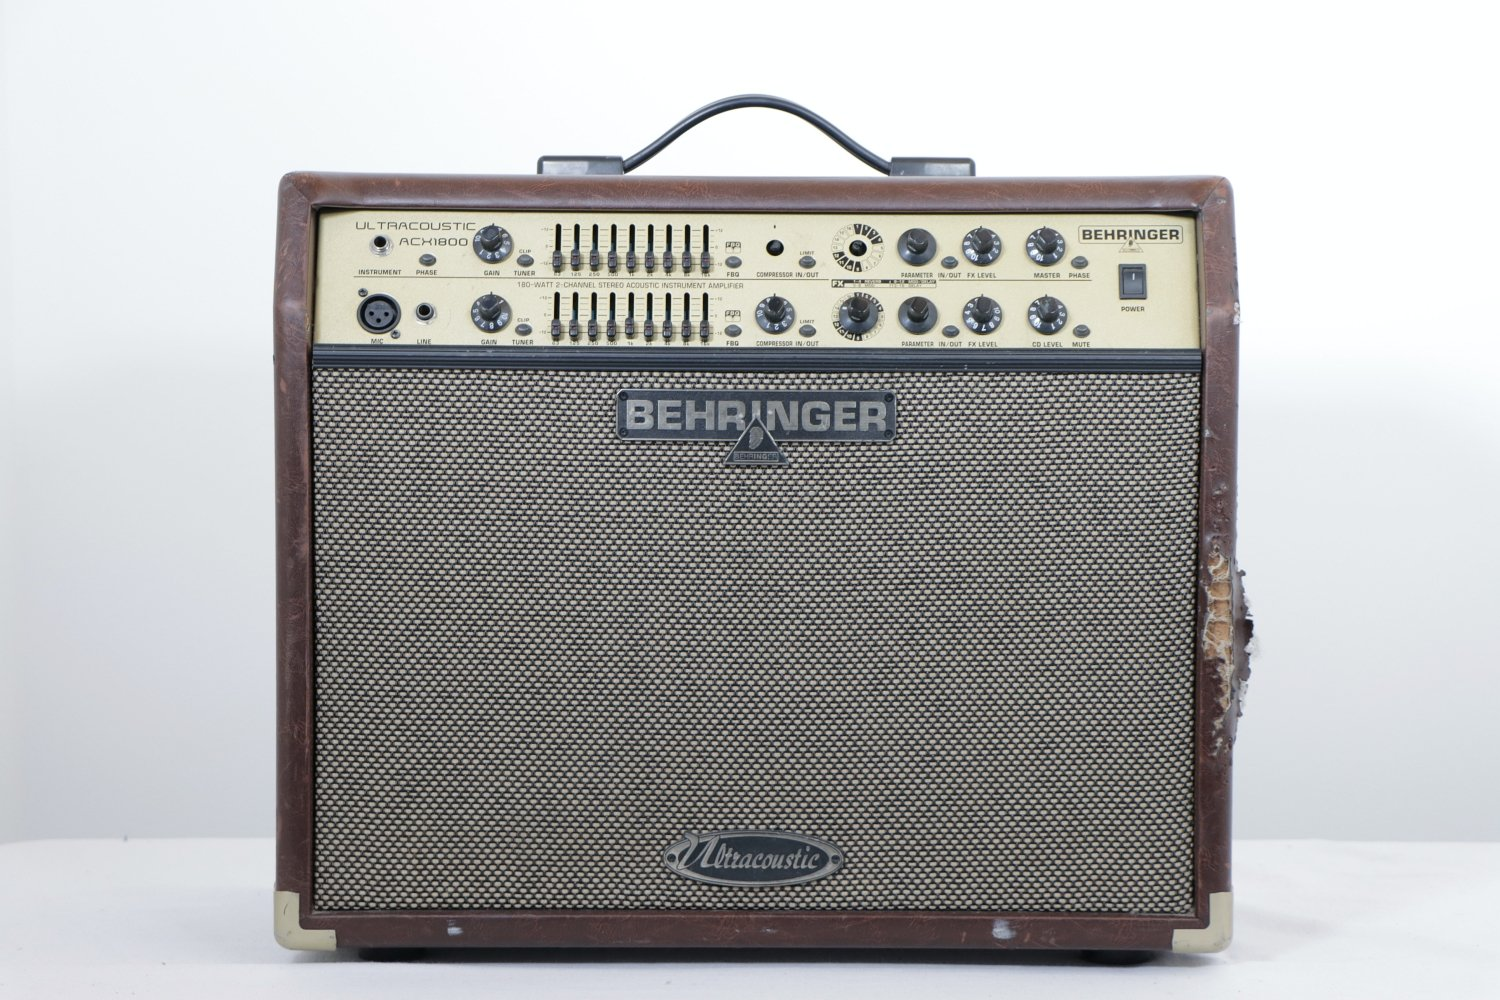 USED Behringer Ultracoustic ACX1800 - 180-watt 2x8 Stereo Acoustic Combo